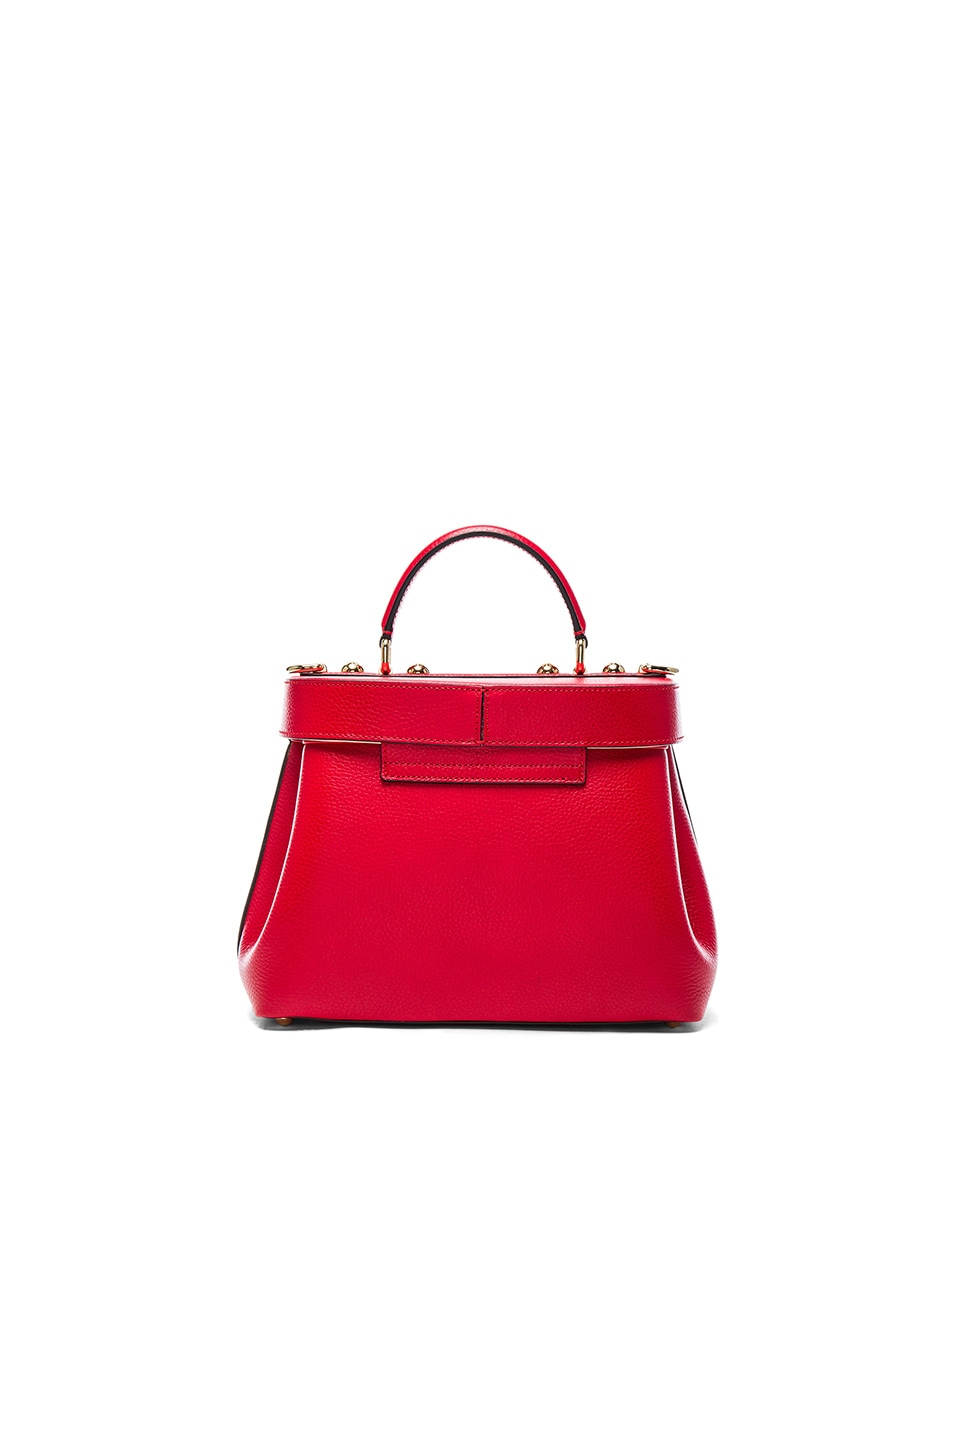 Image 2 of Dolce & Gabbana Dolce Beauty in Rosso